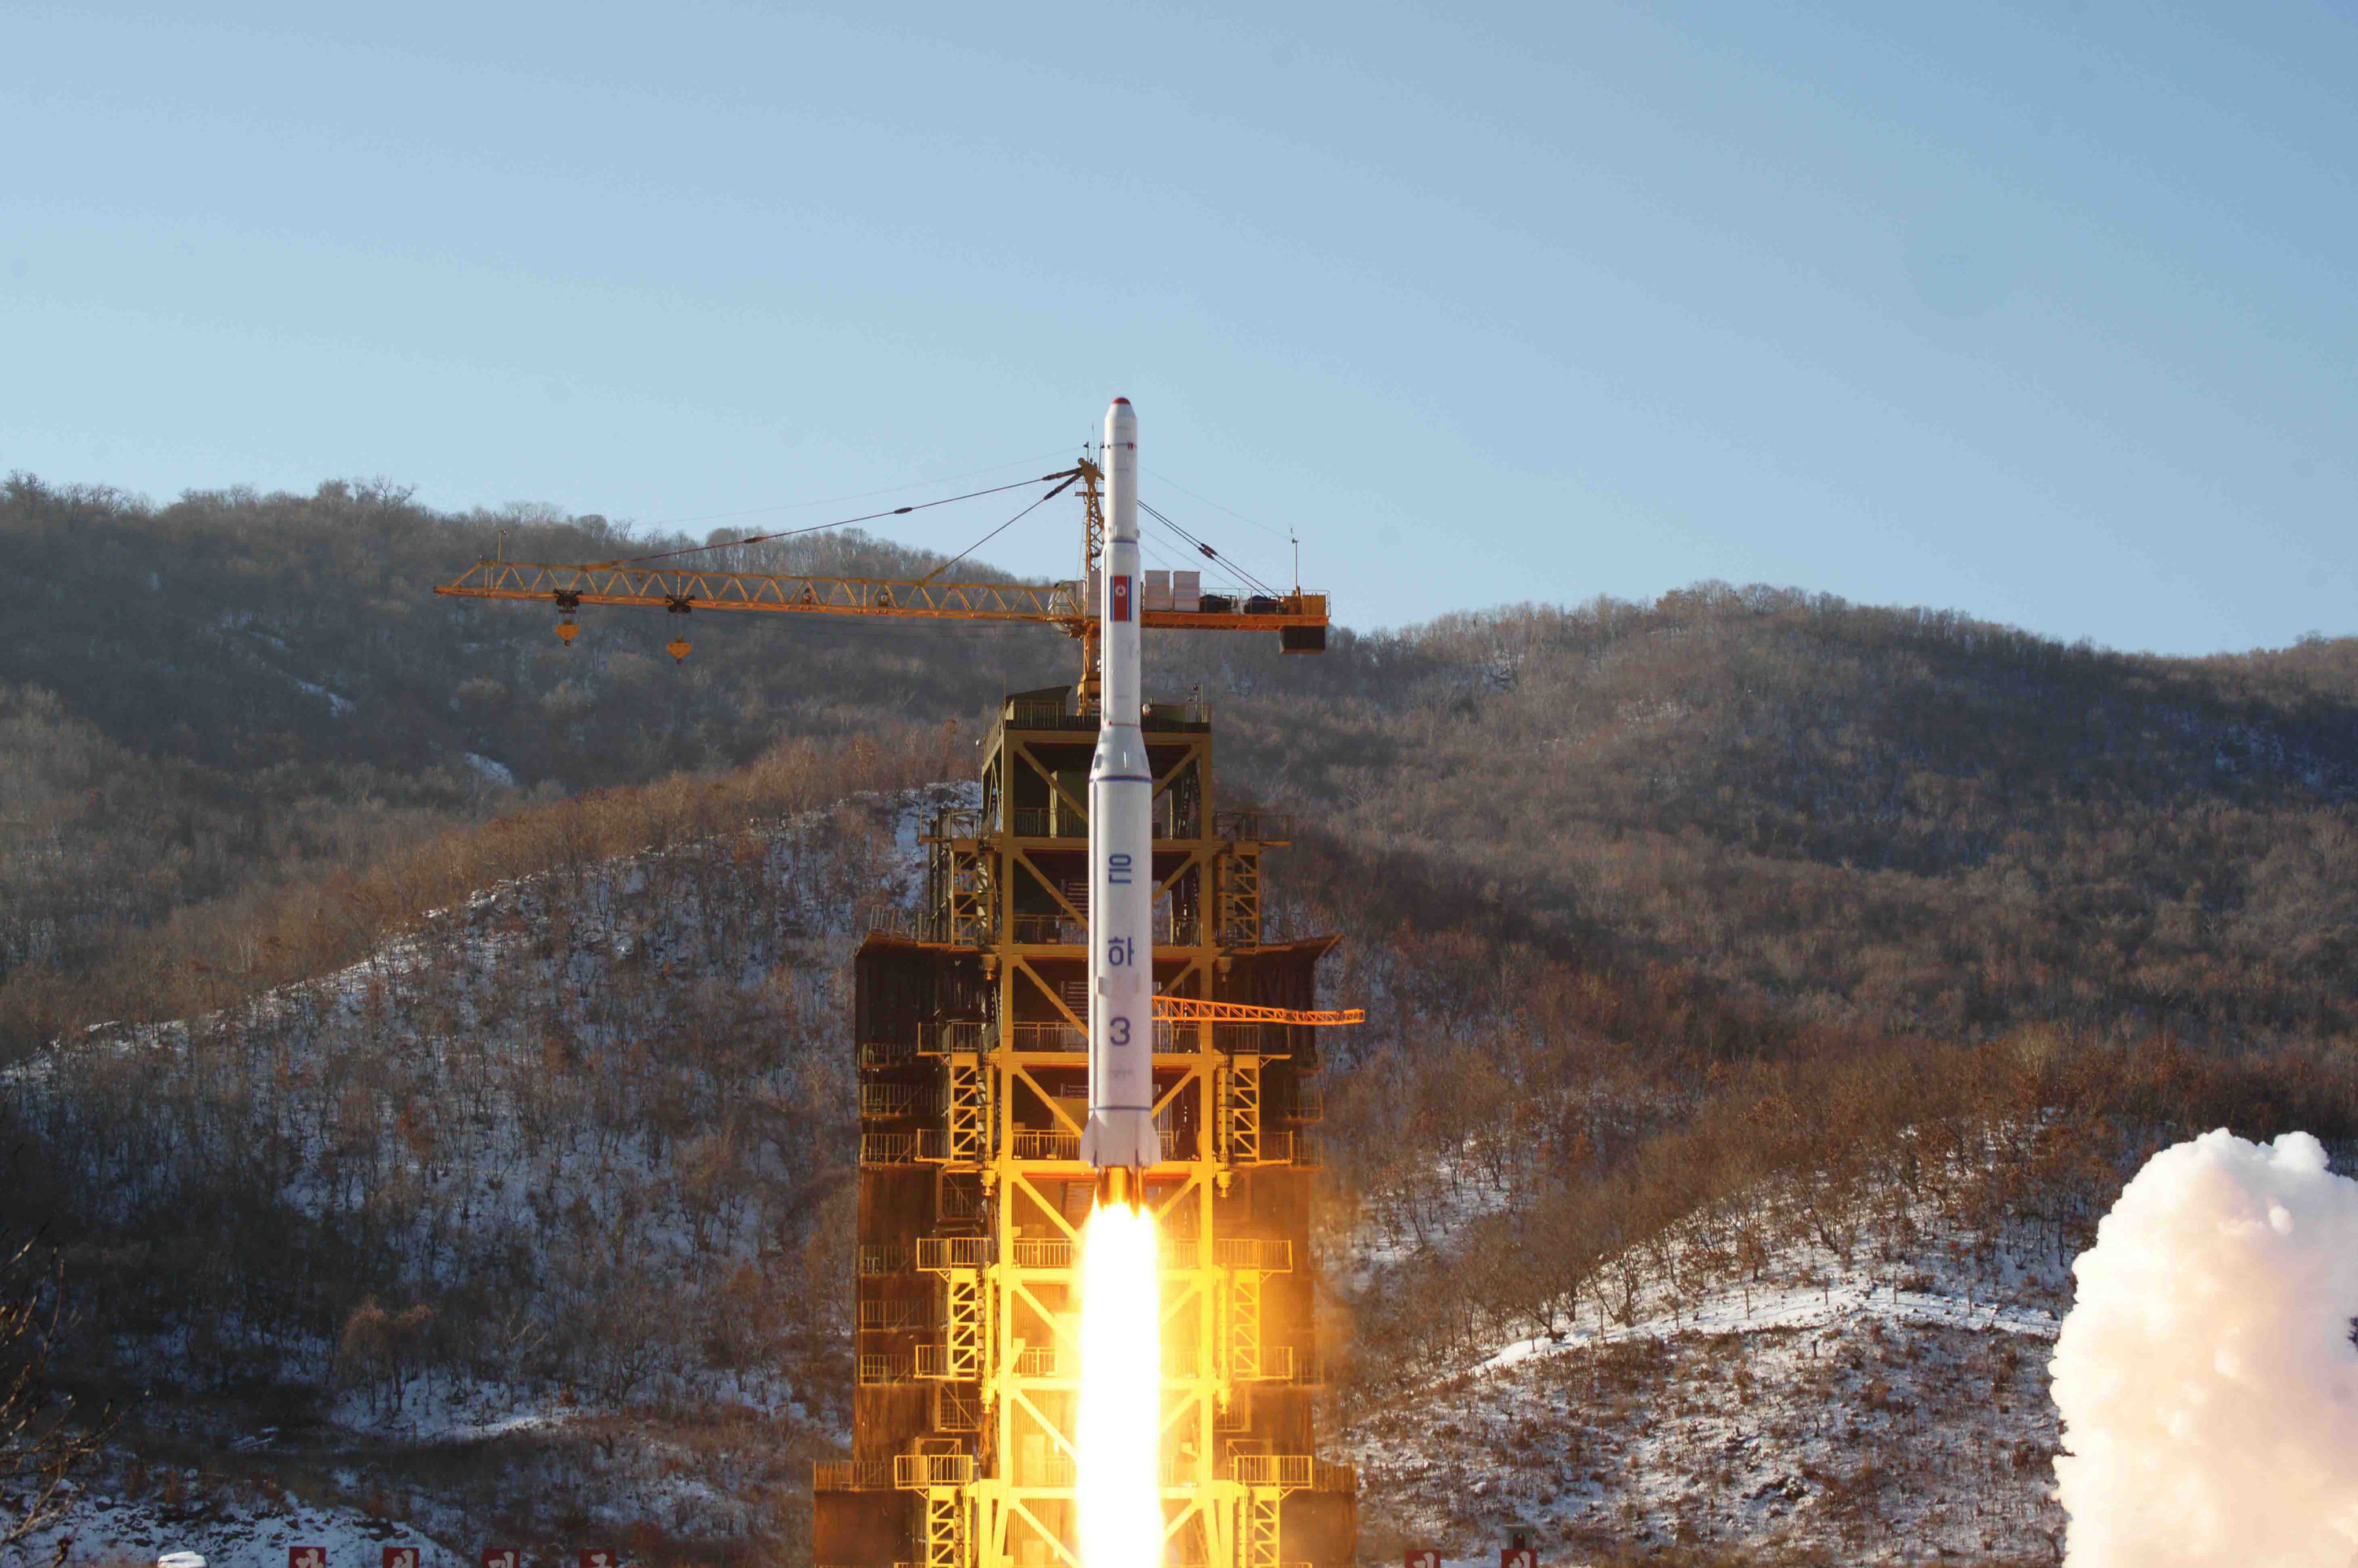 In this Dec. 12, 2012 file photo released by Korean Central News Agency, North Korea's Unha-3 rocket lifts off from the Sohae launch pad in Tongchang-ri, North Korea